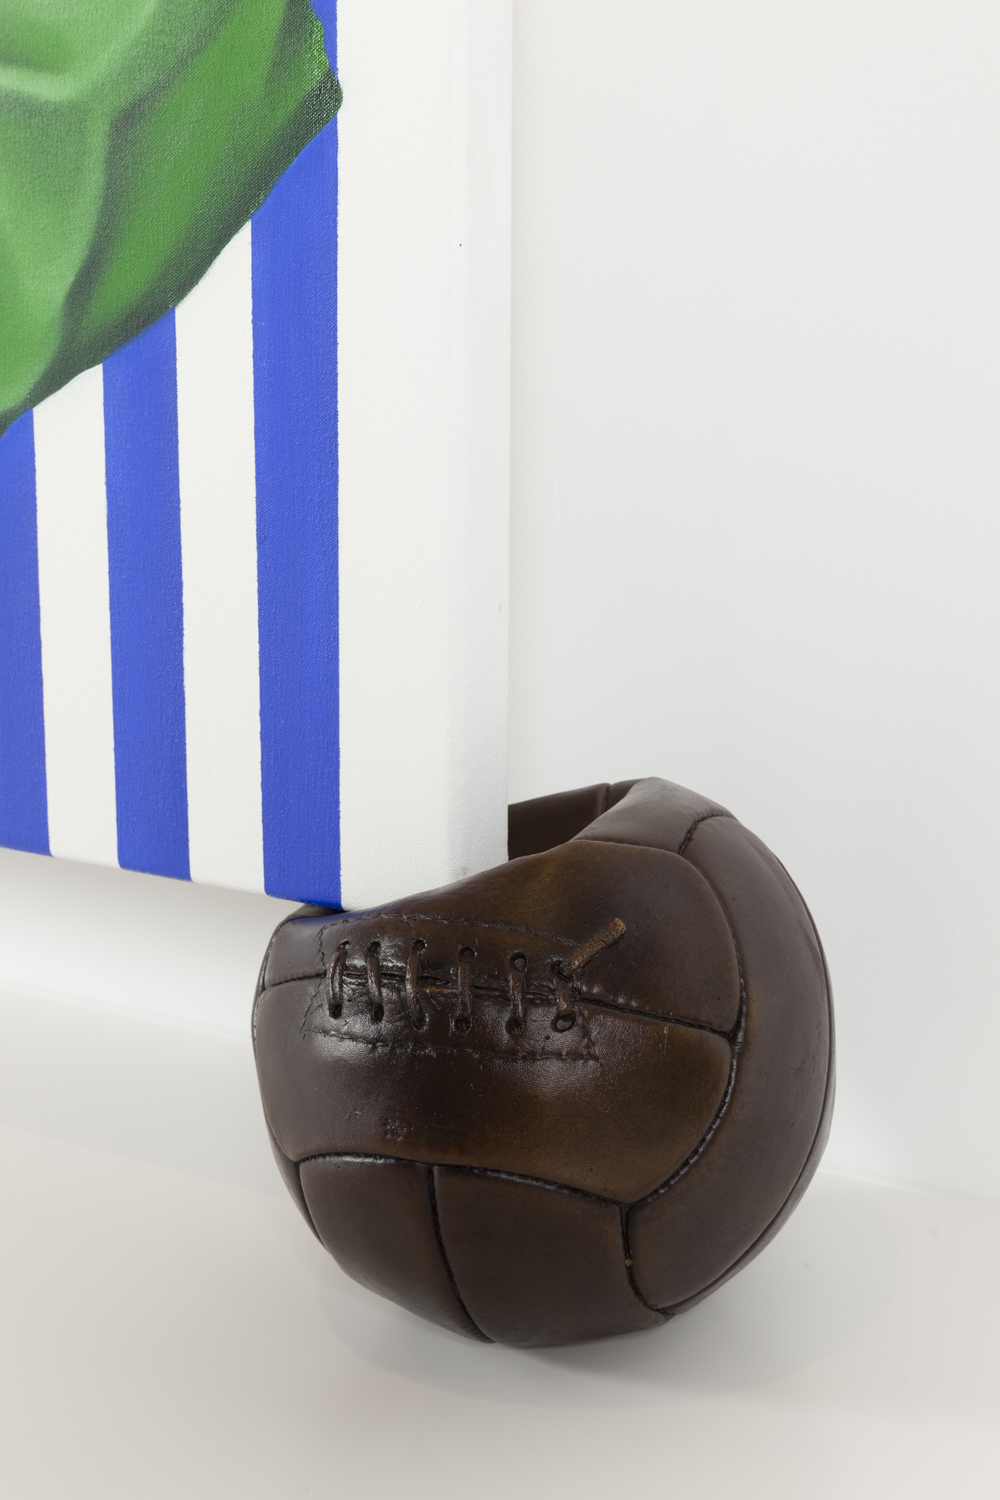 Copa close up, (Artbank/Gertrude Contemporary commission) 2015. Oil on canvas, cast bronze football.